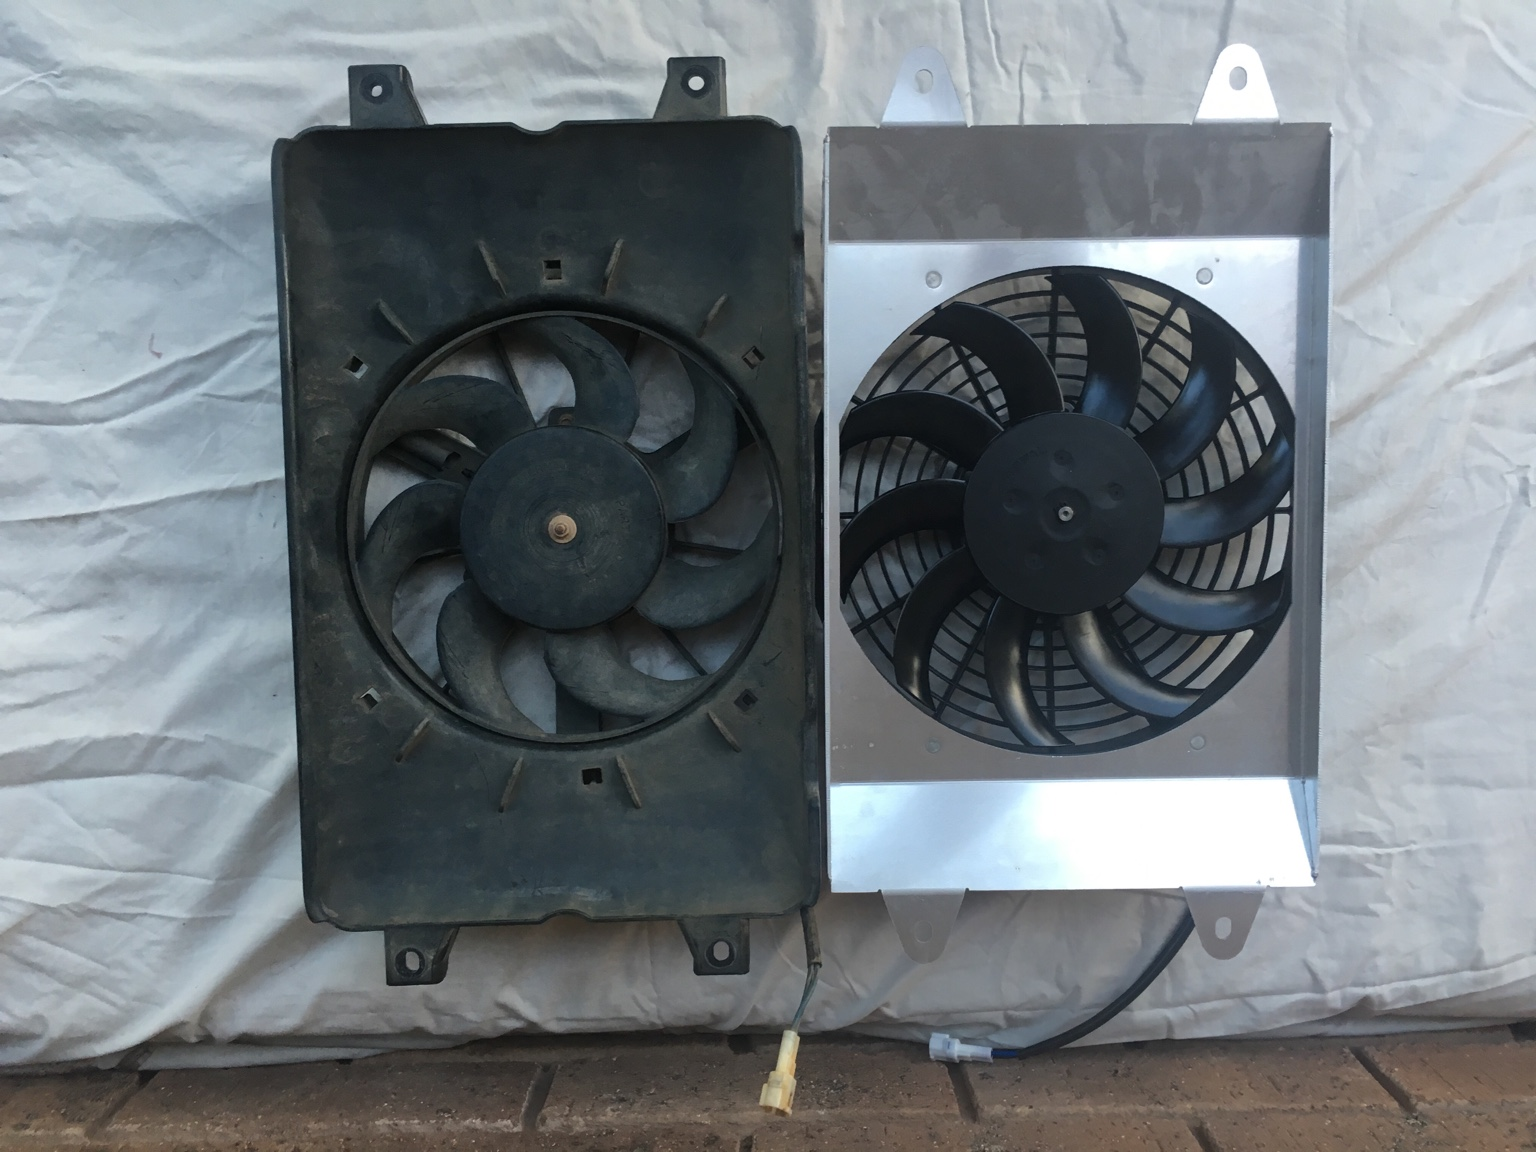 Viking HP SPAL radiator fan upgrade  - Yamaha Viking Forum